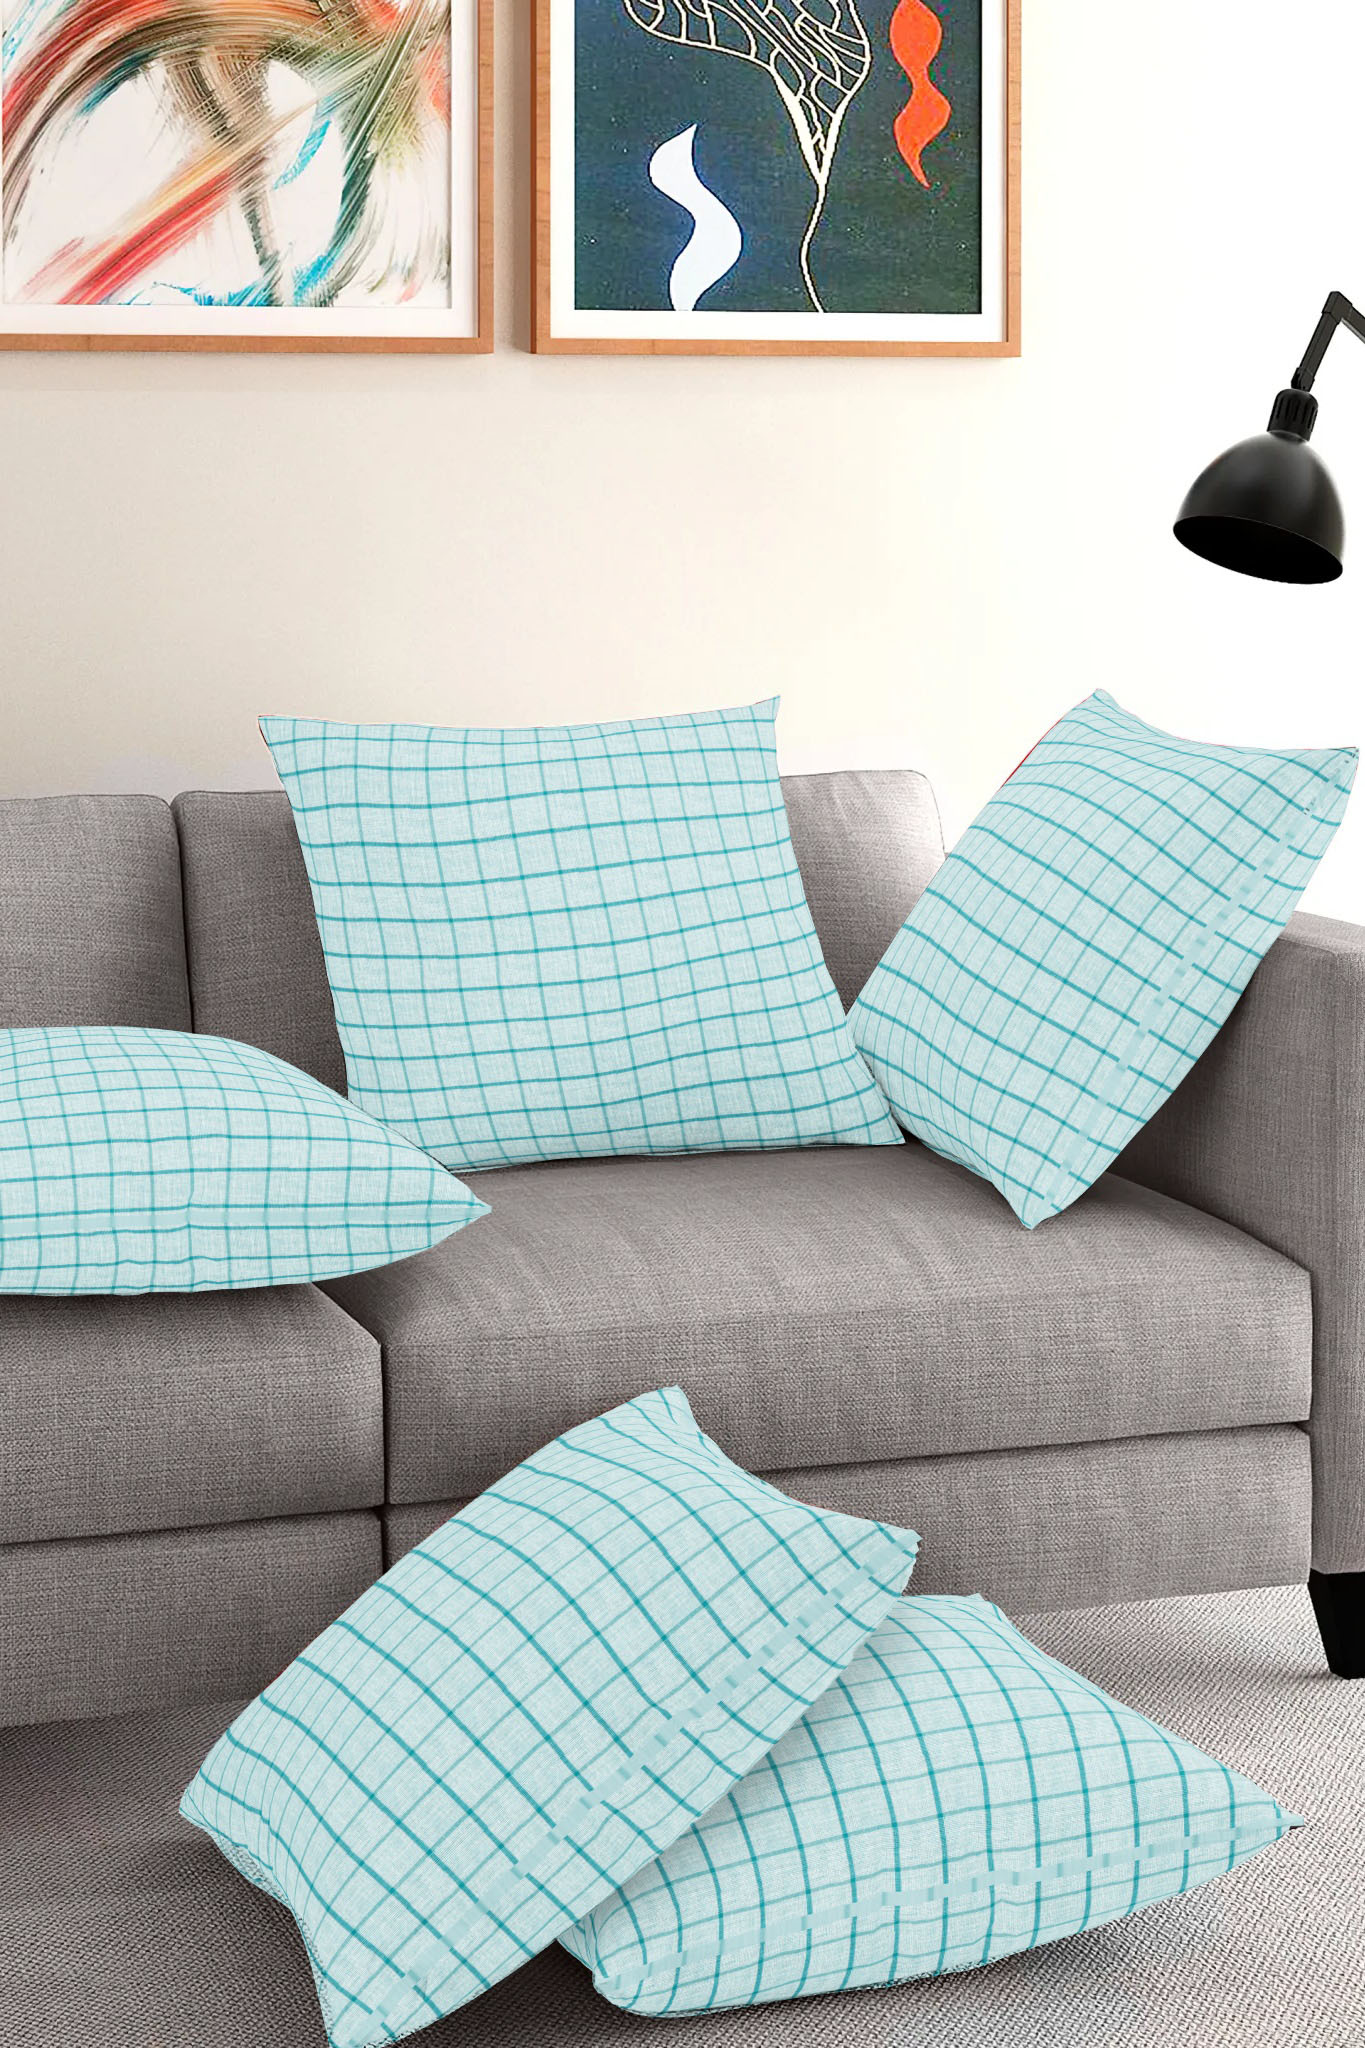 Set of 5-Cyan Blue Cotton Cushion Cover-35403-16x16 Inches